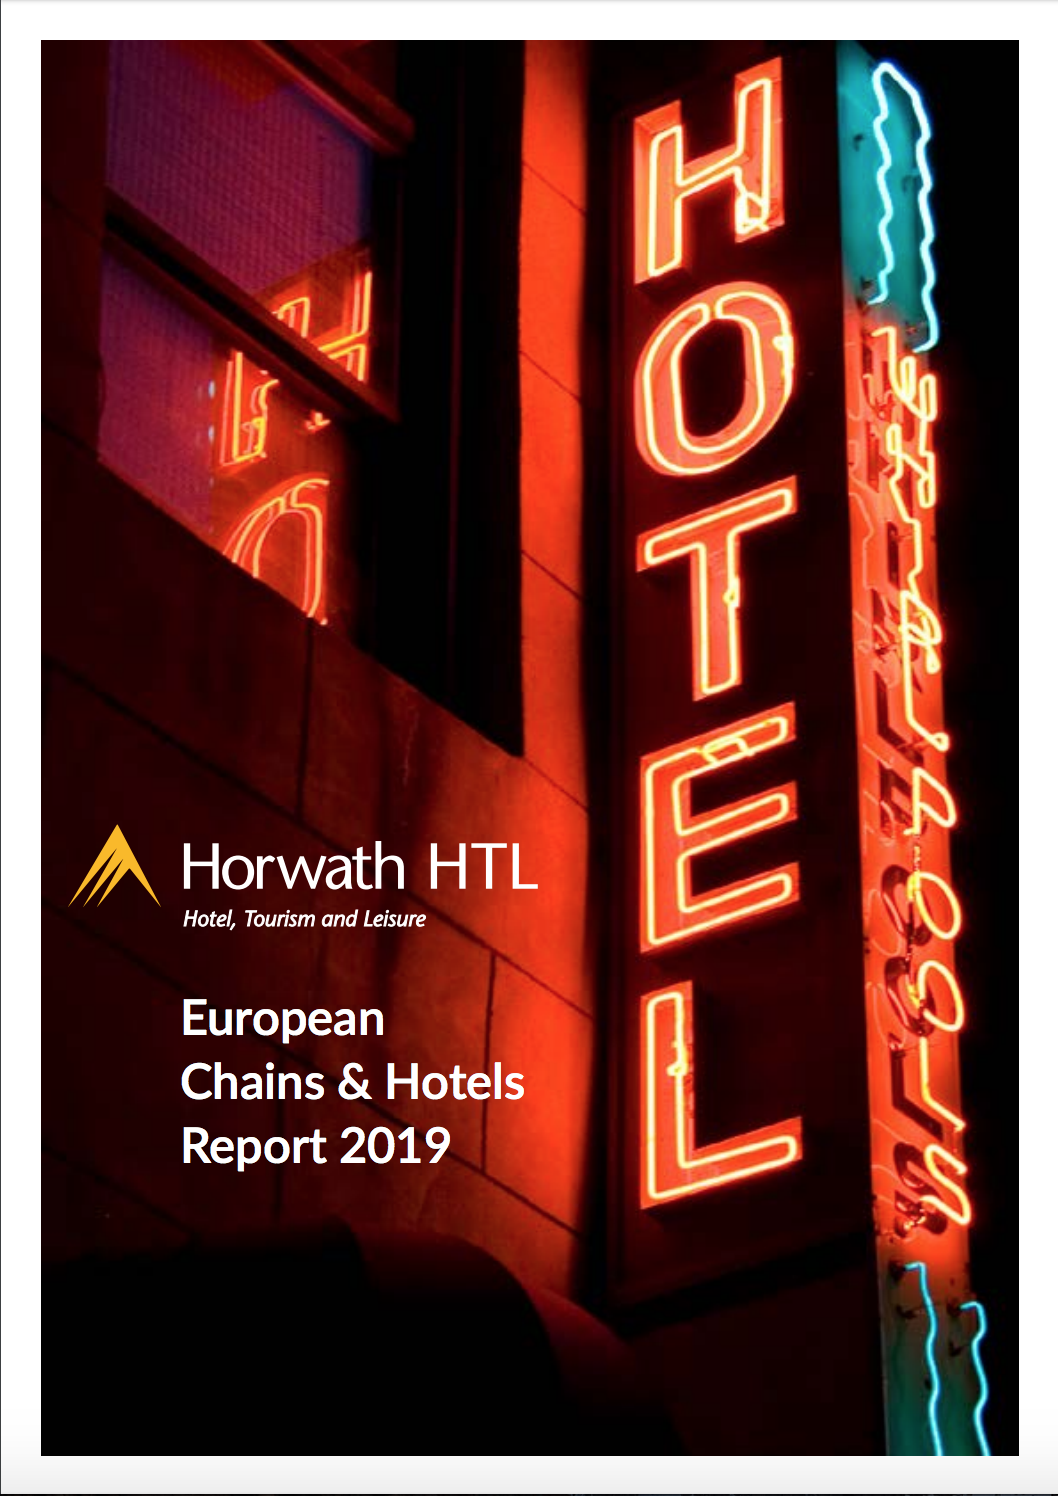 European Chains & Hotels Report 2019